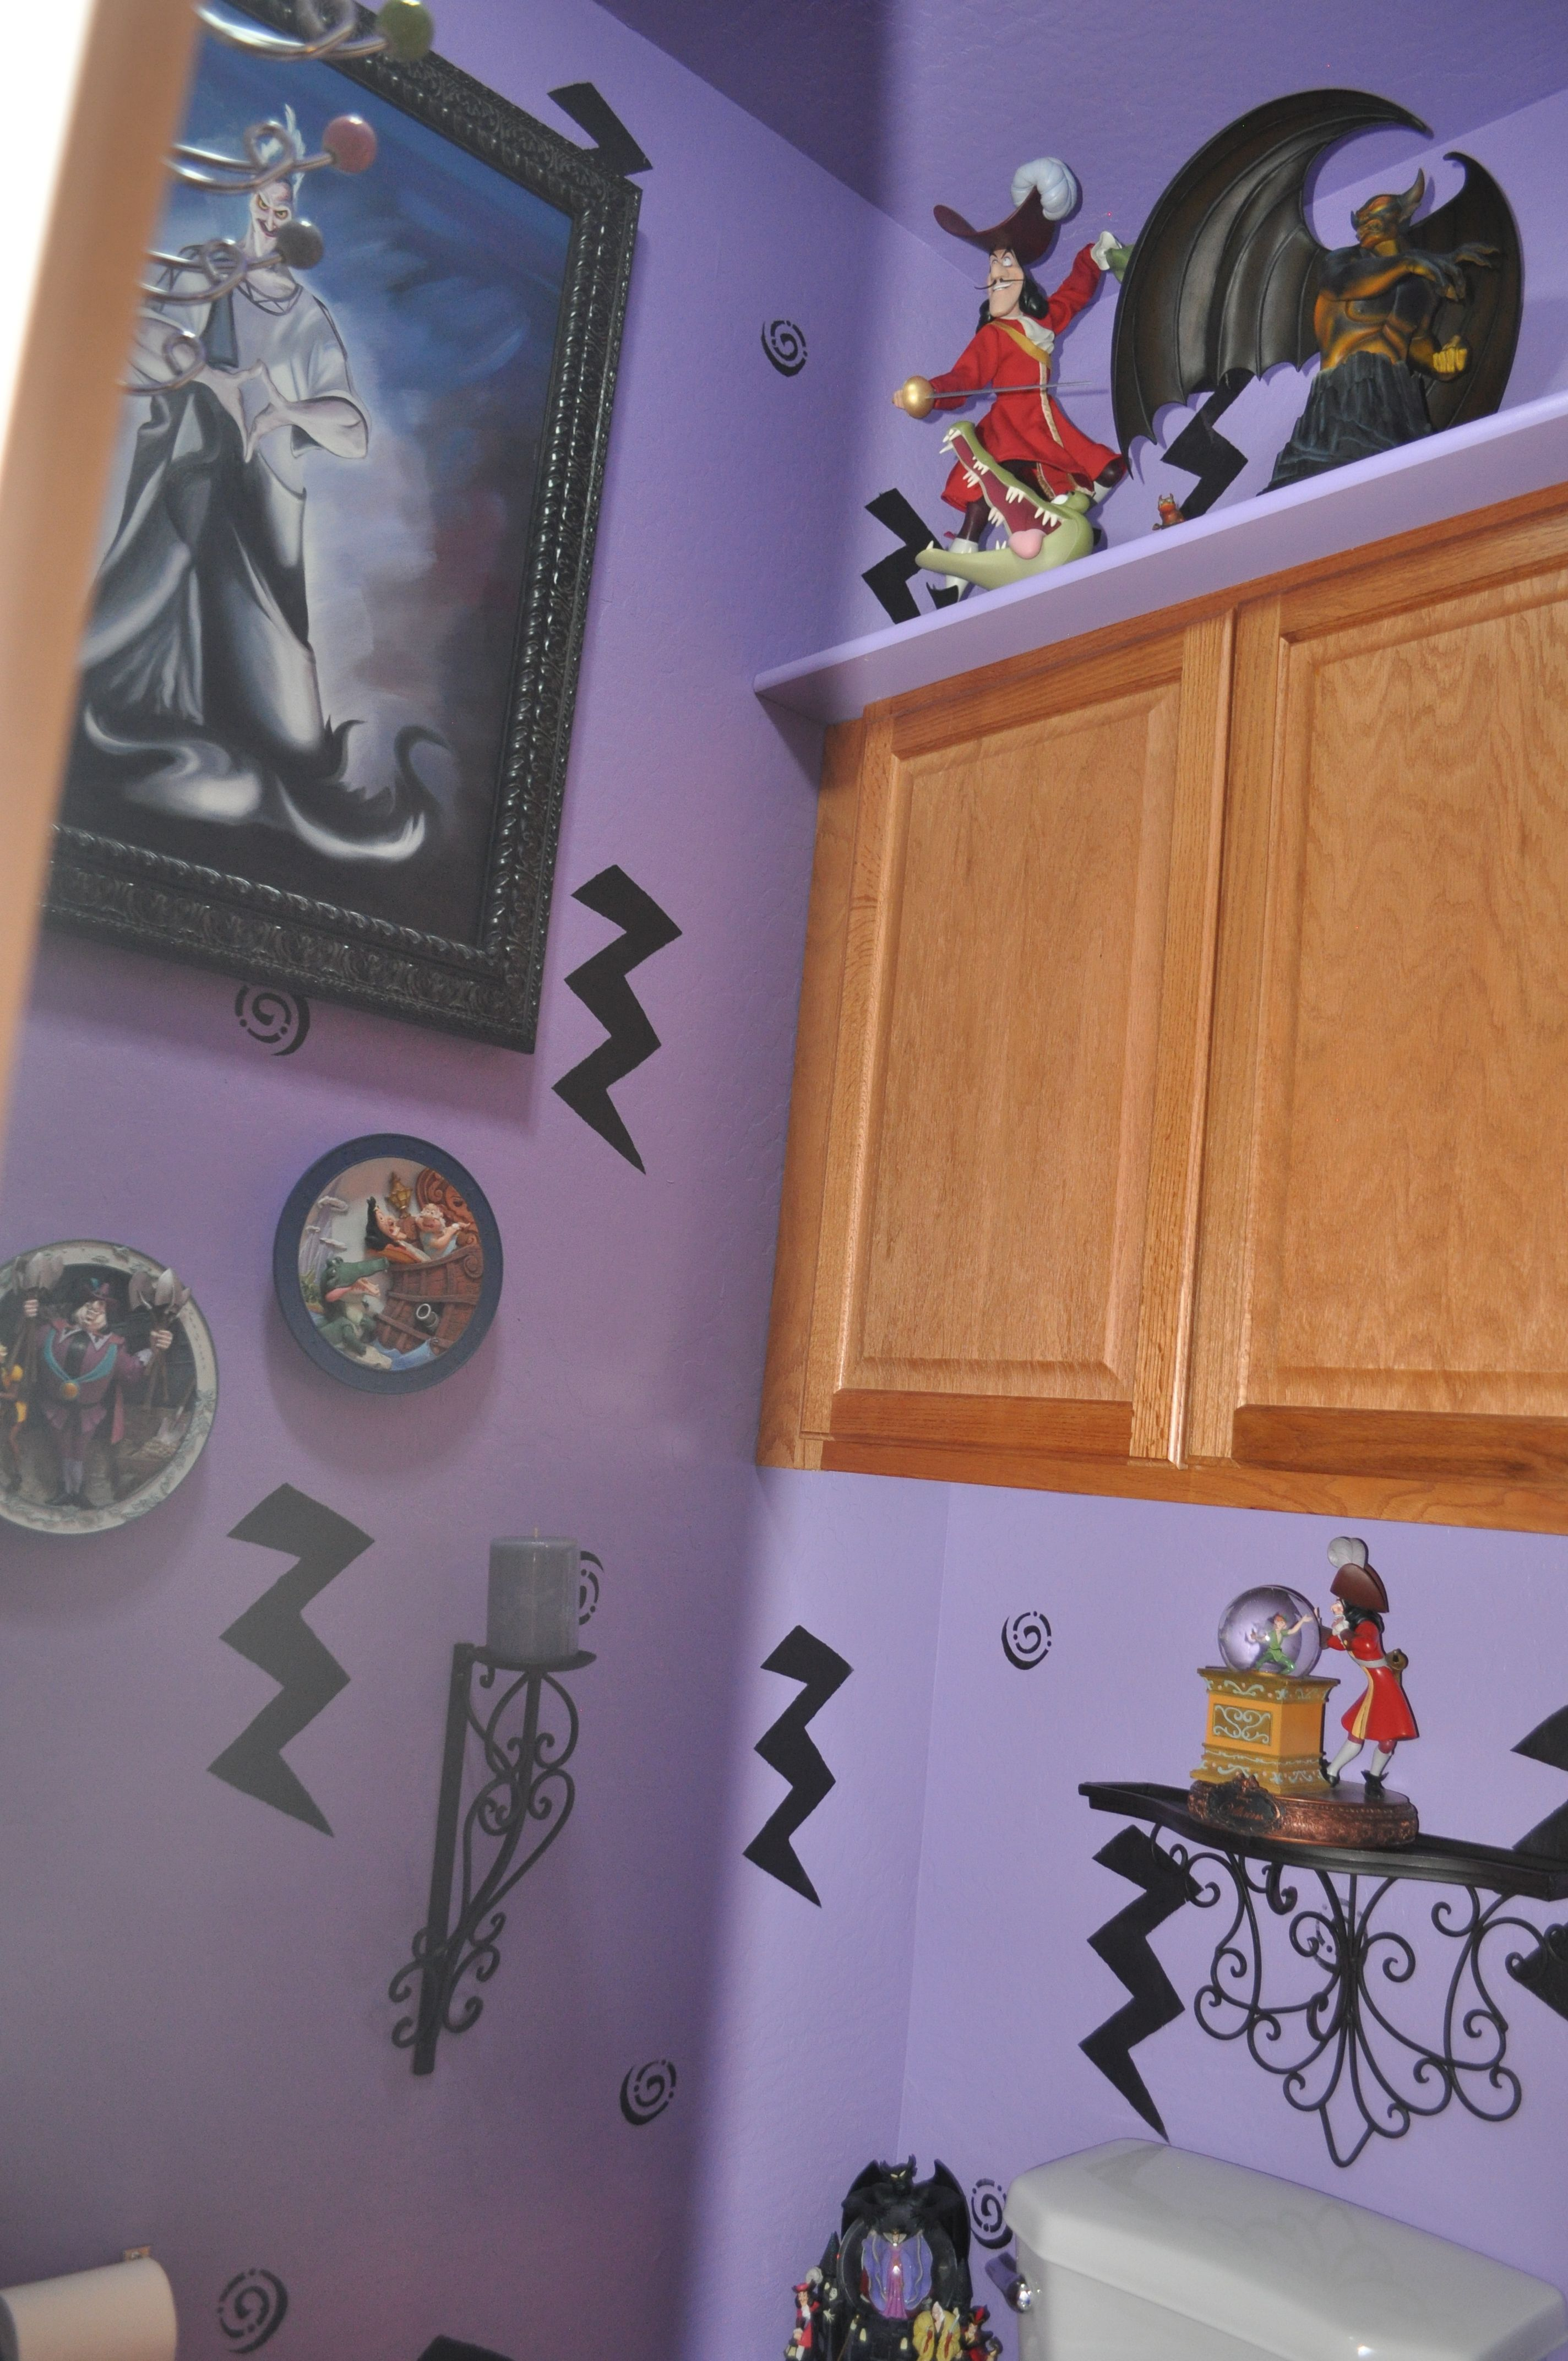 Disney Villains bathroom; decorating www.mydisneylove.com | My ...